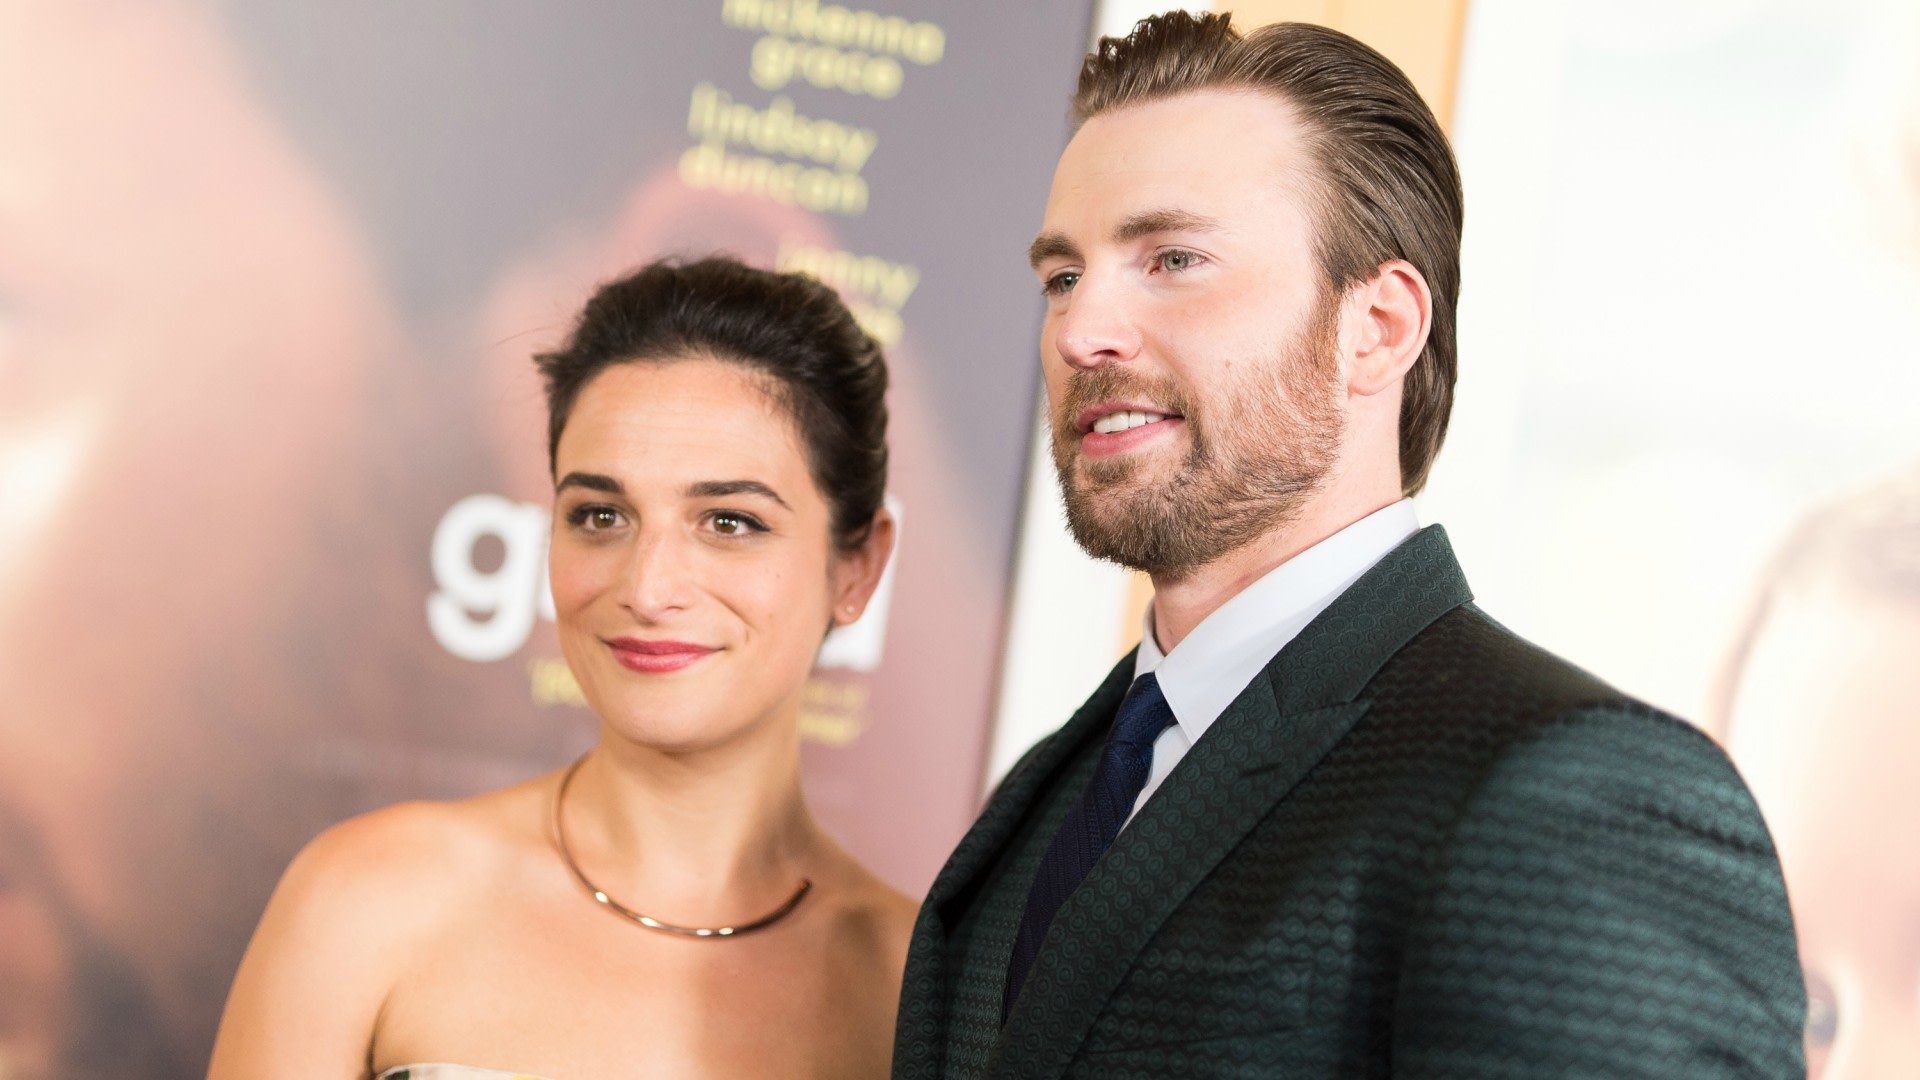 Chris Evans and Jenny Slates breakup prove you shouldnt get back with an ex images